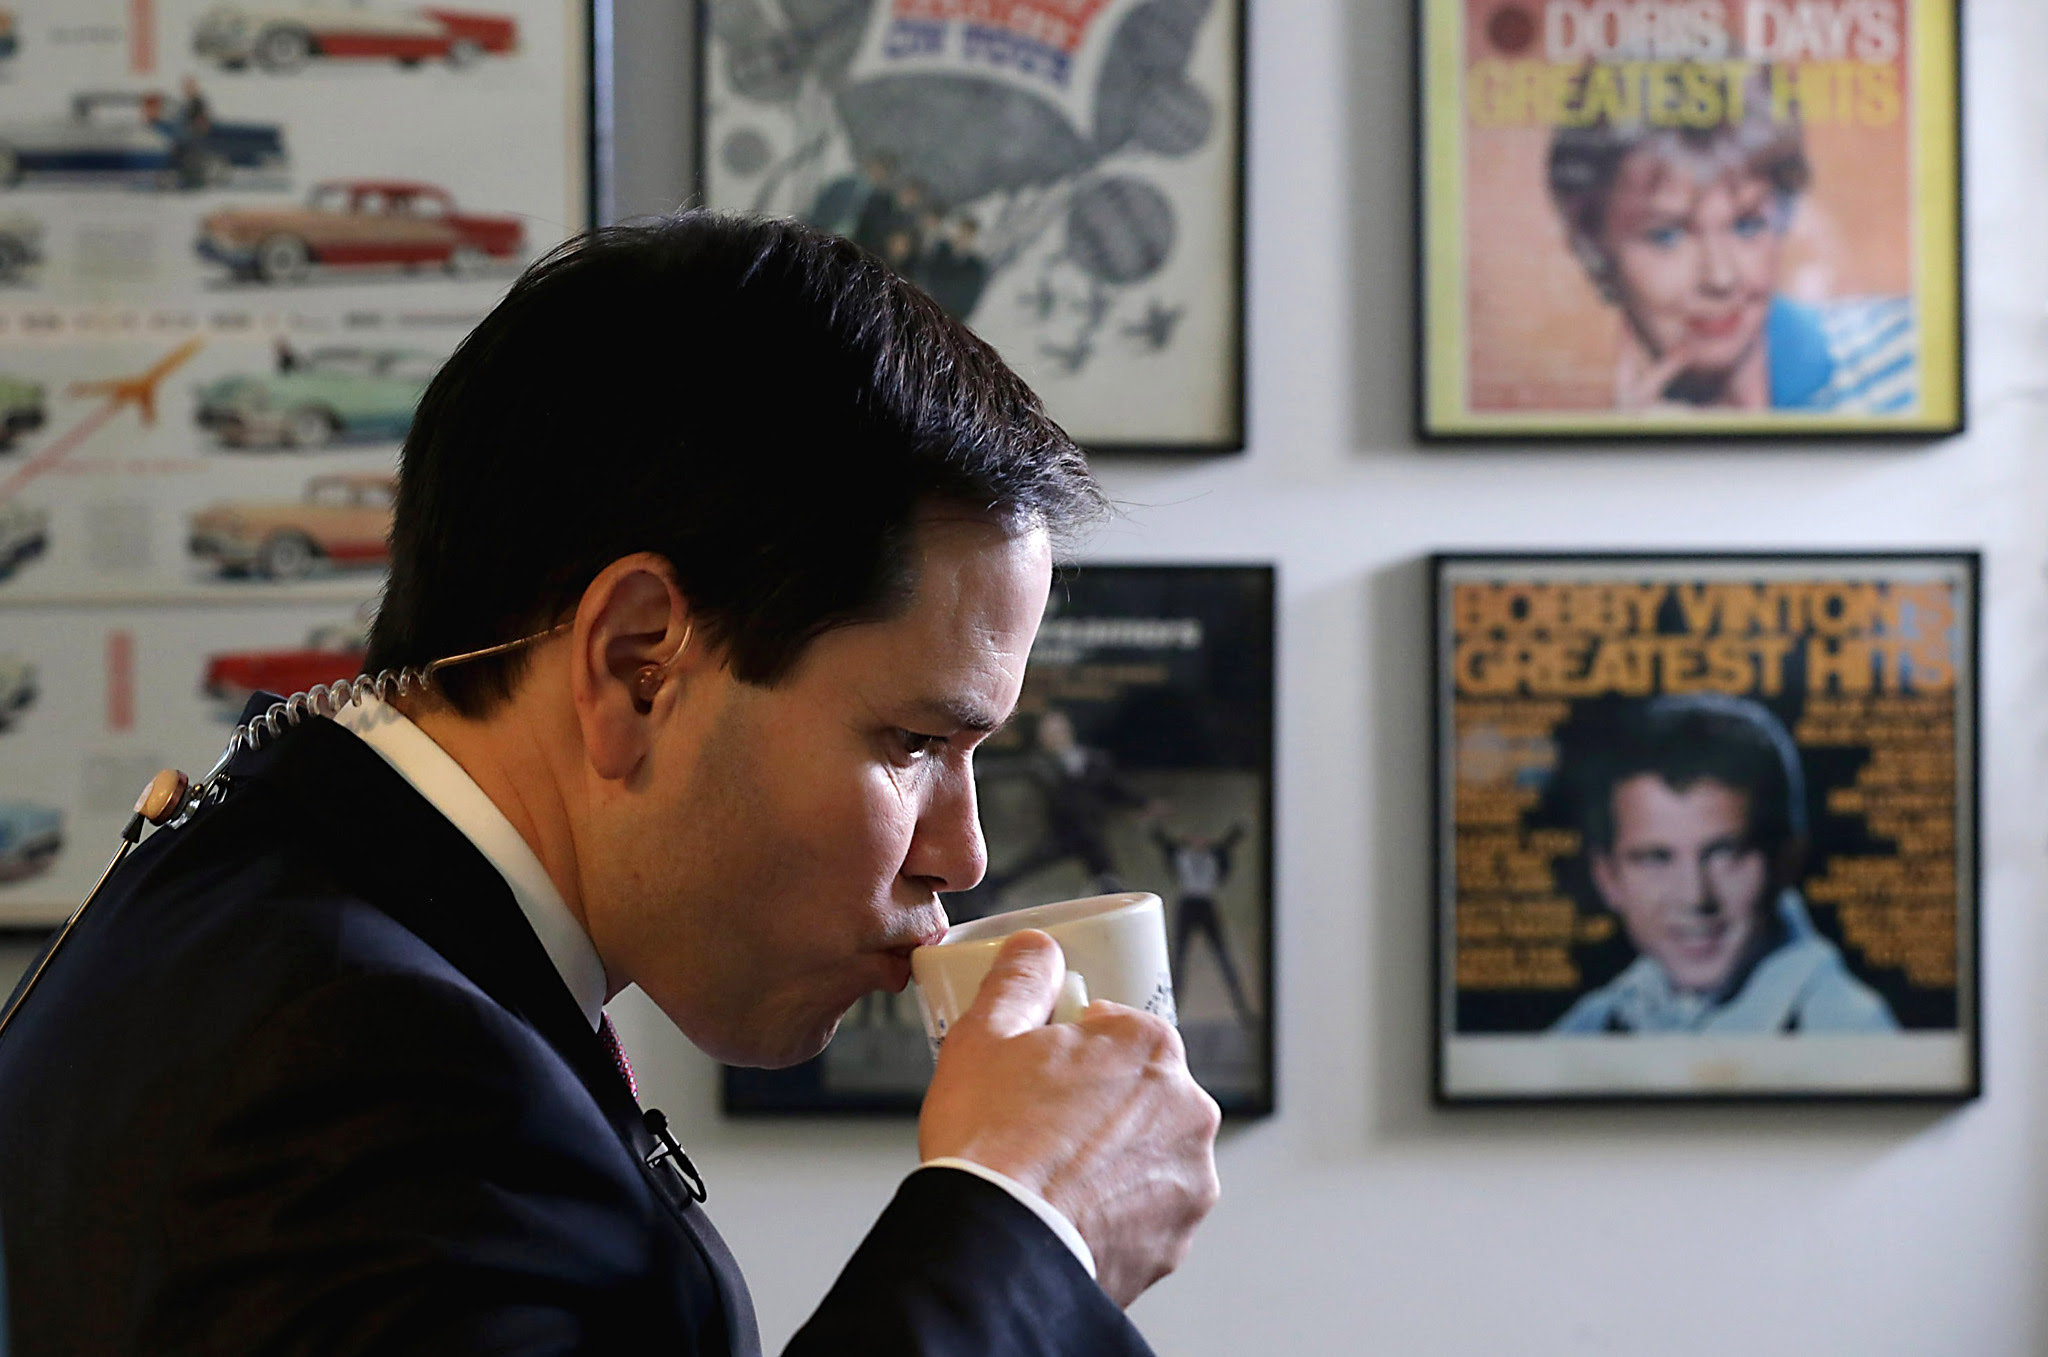 Marco Rubio Campaigns Ahead Of New Hampshire Primary...NASHUA, NH - FEBRUARY 08:  Republican presidential candidate Sen. Marco Rubio (R-FL) sips coffee before doing a television interview at Norton's Classic Cafe during a campaign stop February 8, 2016 in Nashua, New Hampshire. Rubio is hoping for a good showing on Tuesday when people in New Hampsire head to the polls in the 'First in the Nation' presidential primary.  (Photo by Chip Somodevilla/Getty Images) **BESTPIX**